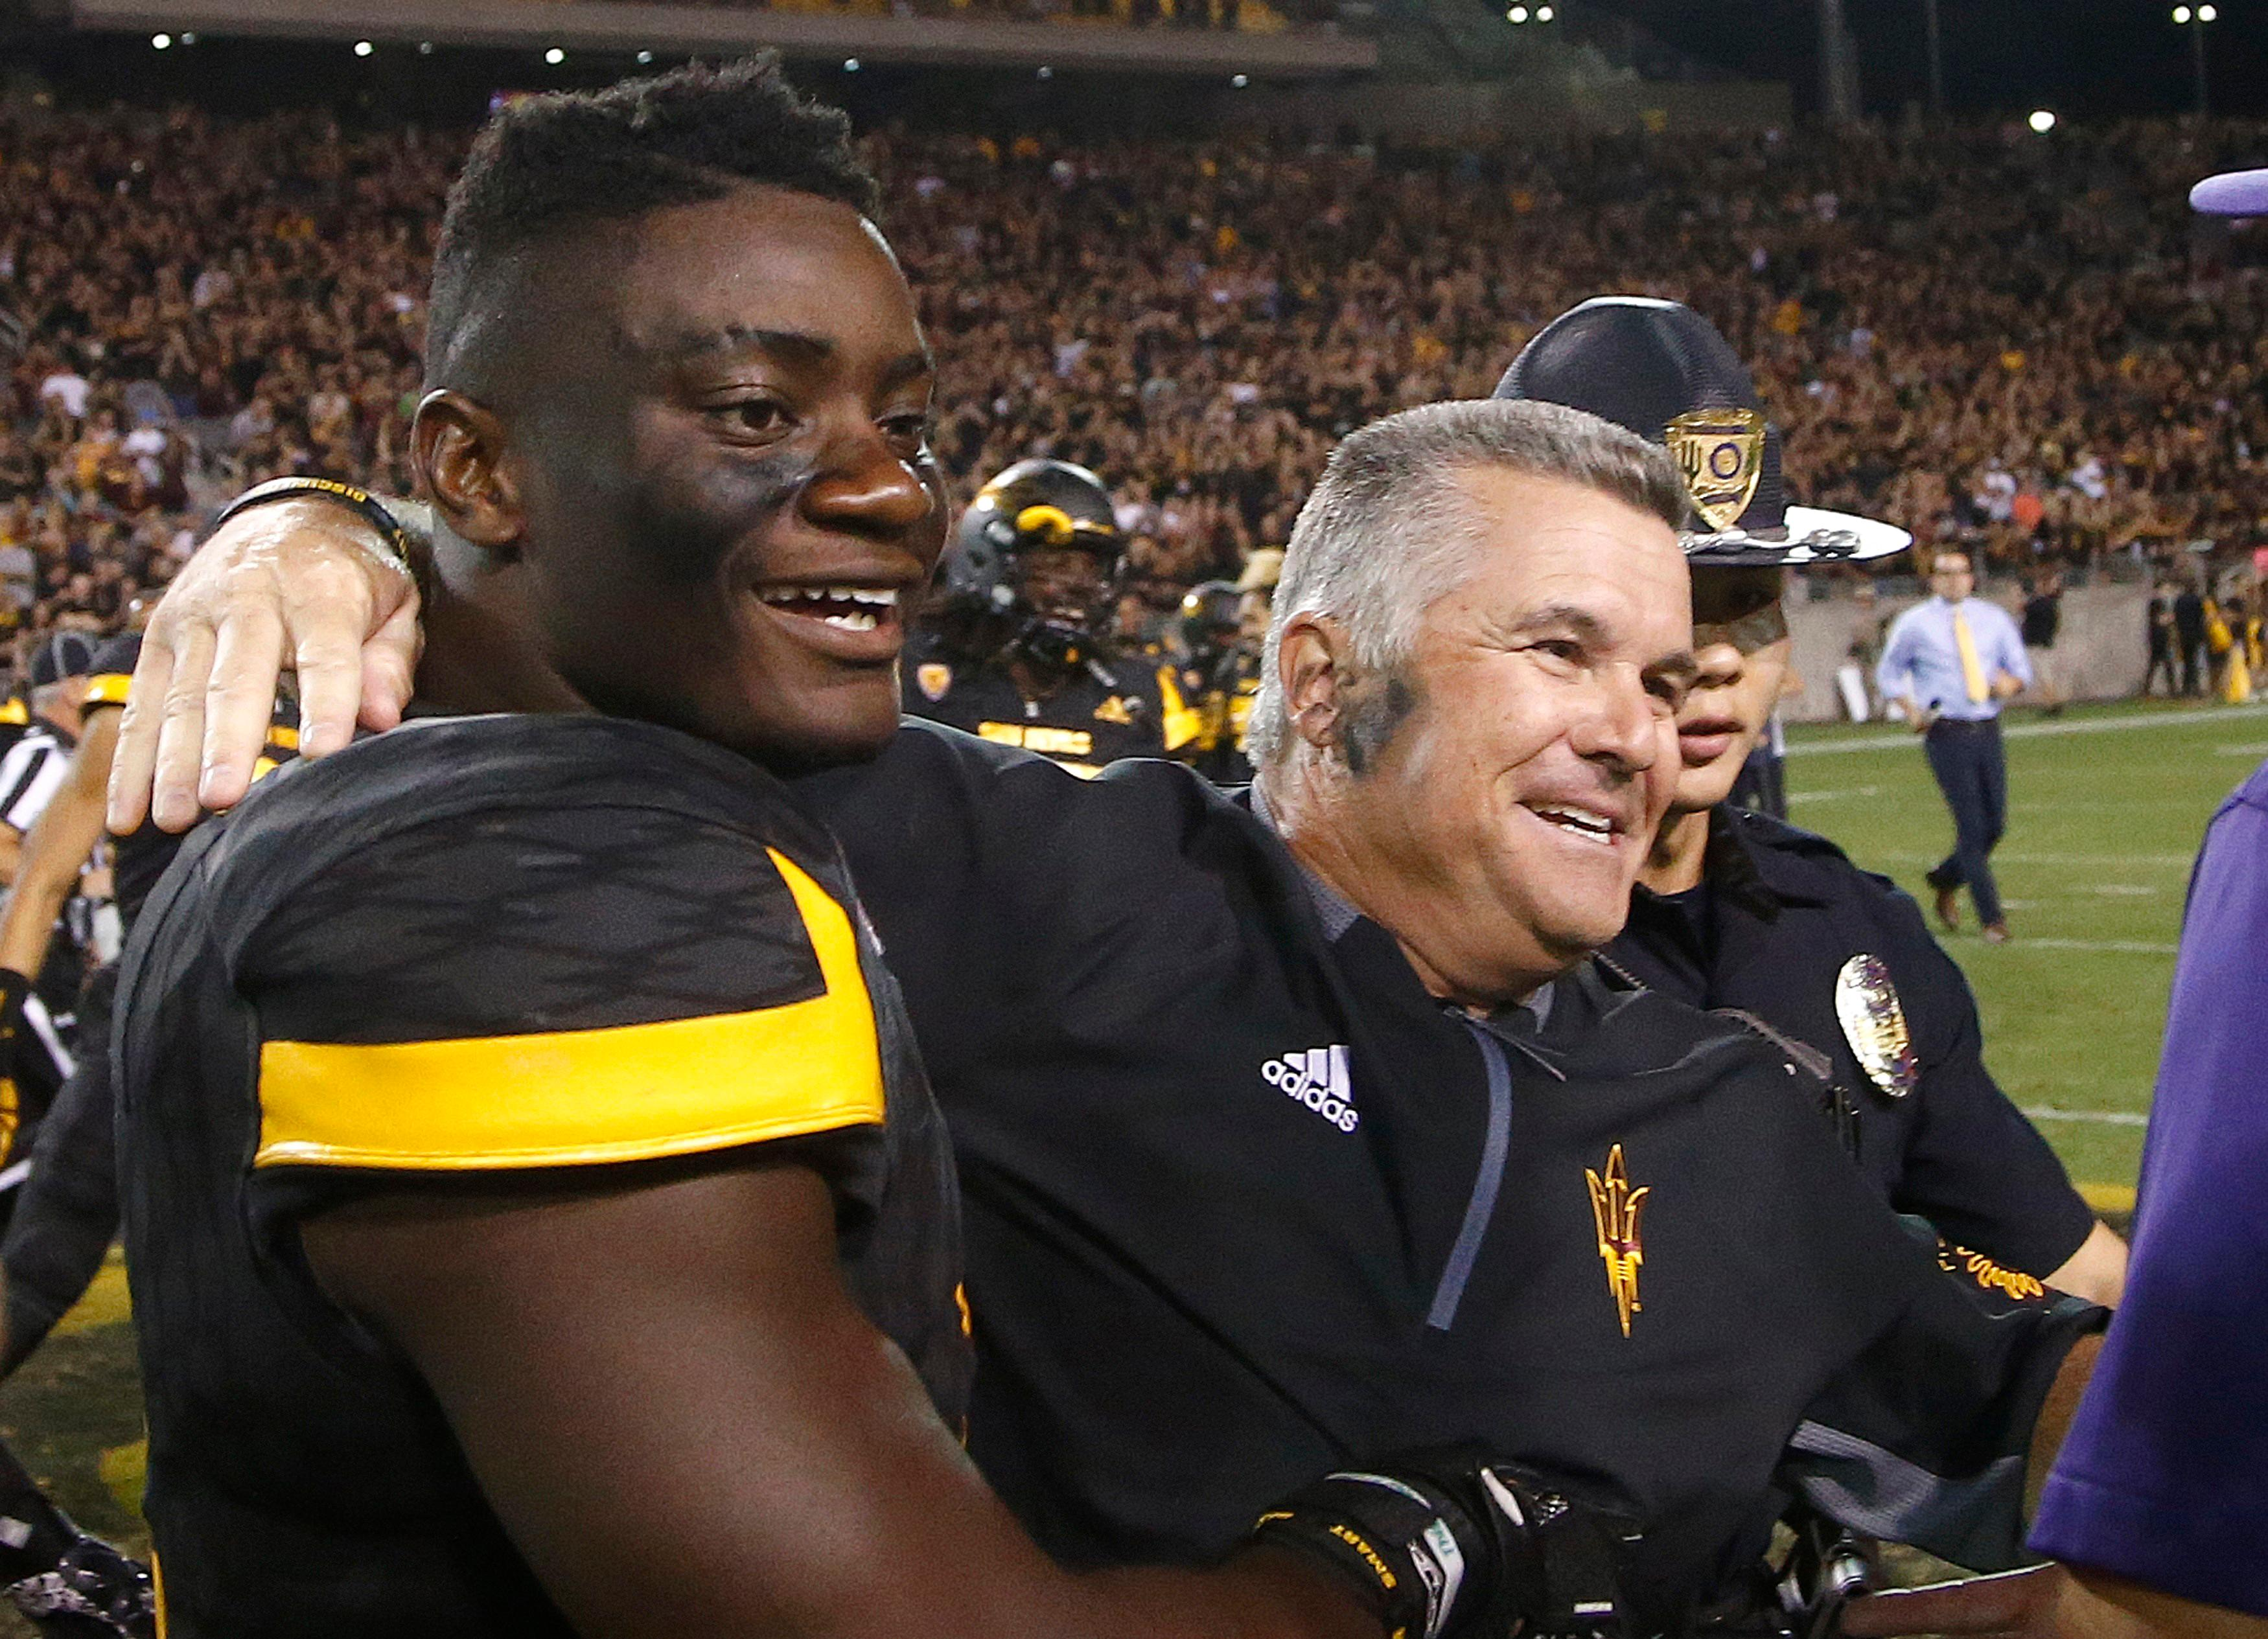 FILE - In this Oct. 14, 2017, file photo, Arizona State head coach Todd Graham, right, celebrates with linebacker Christian Sam, left, after an NCAA college football game against Washington, in Tempe, Ariz. Sam was selected to the AP All-Conference Pac-12 team announced Thursday, Dec. 7, 2017. (AP Photo/Ross D. Franklin, File)